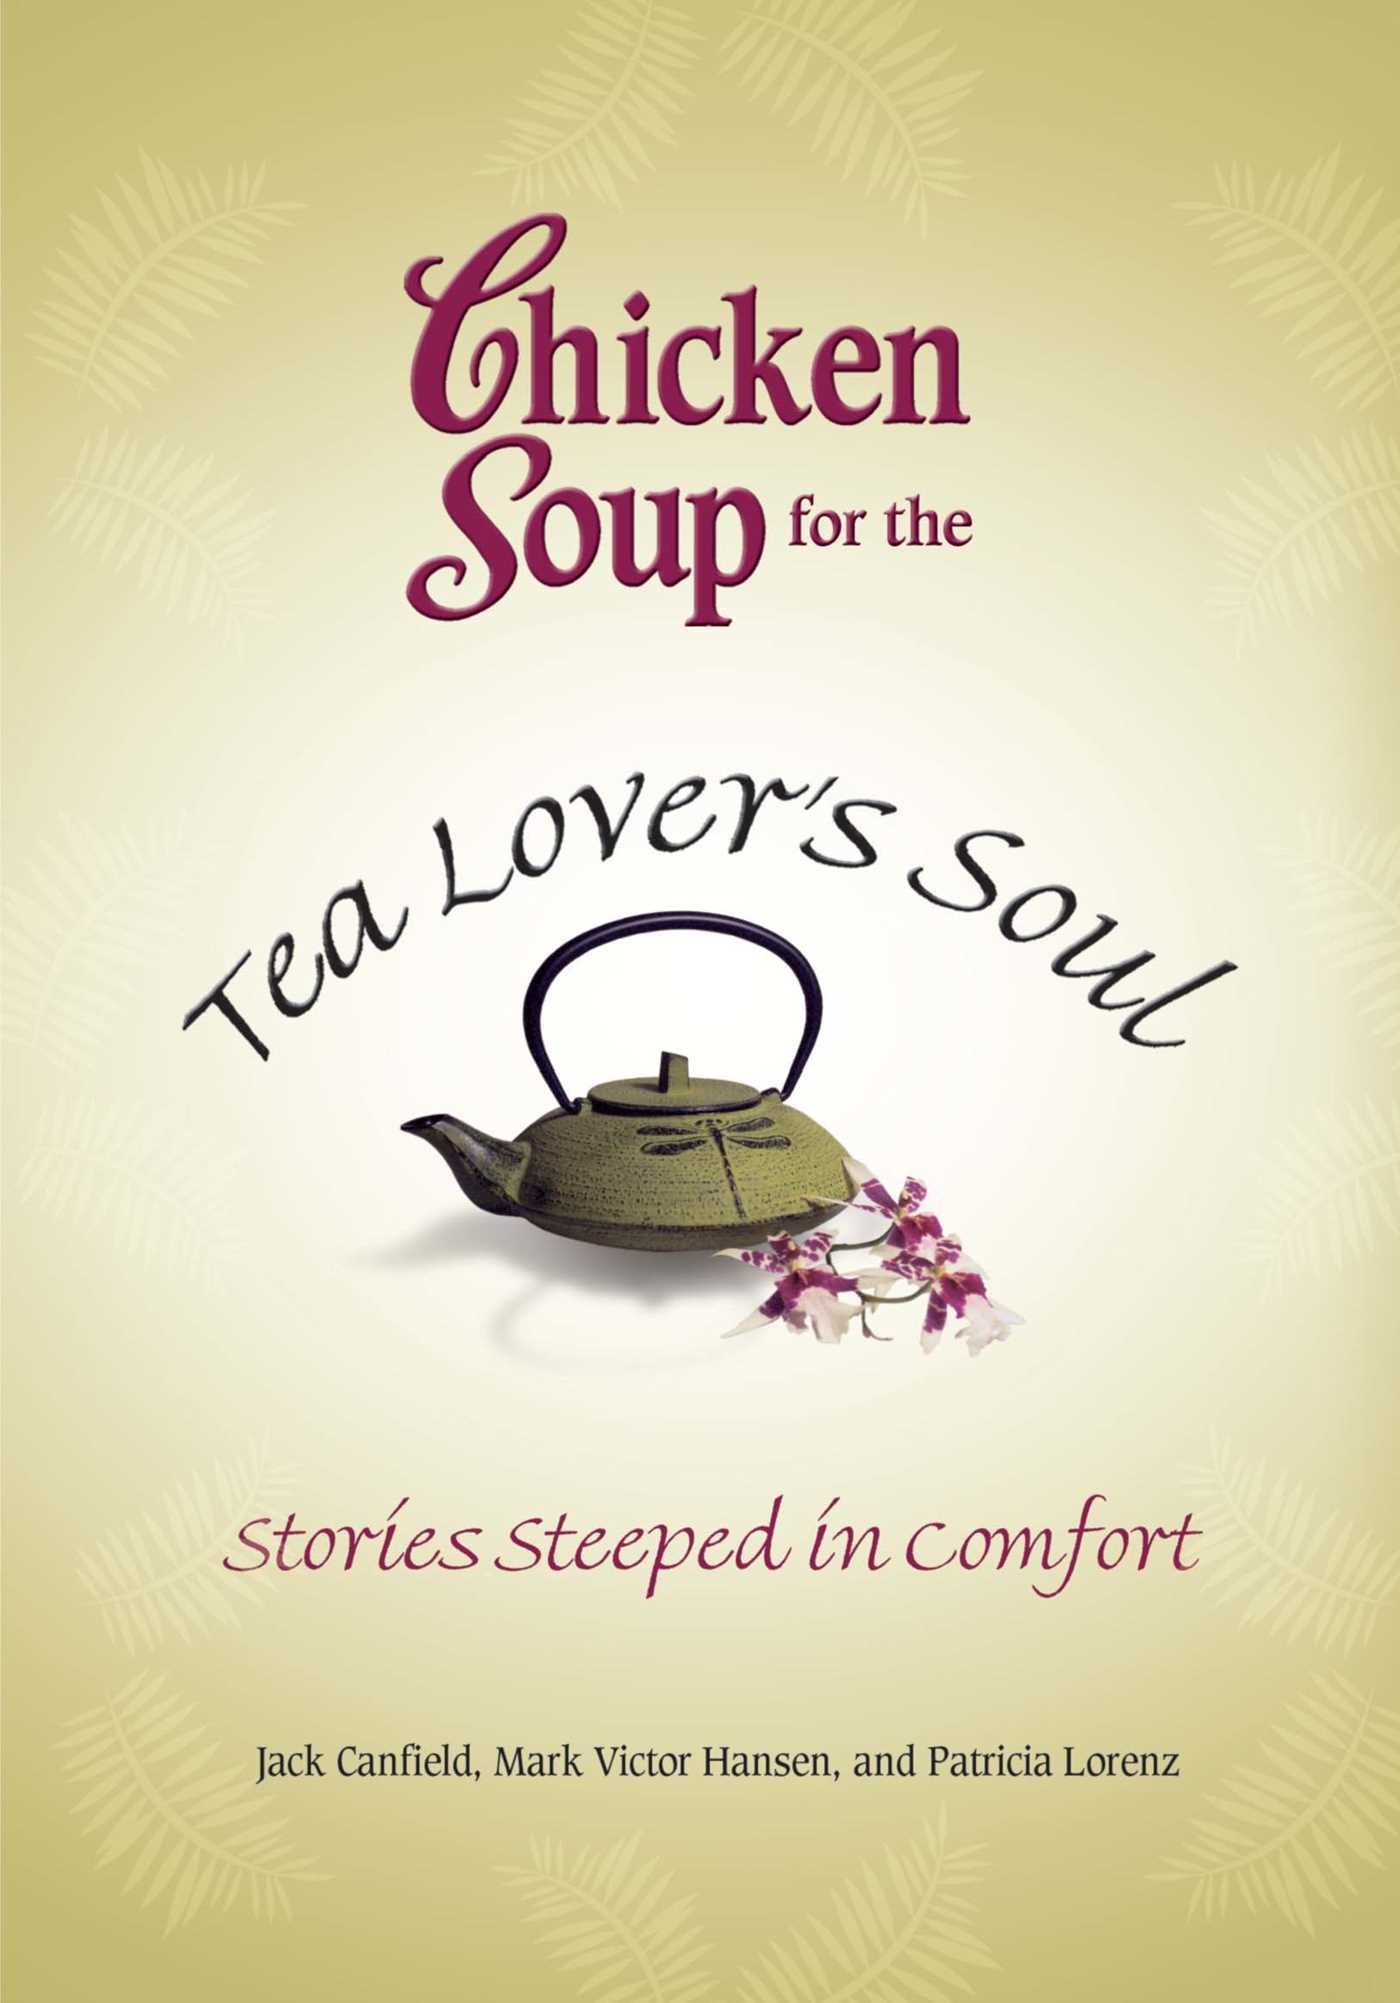 Chicken-soup-for-the-tea-lovers-soul-9781623610647_hr